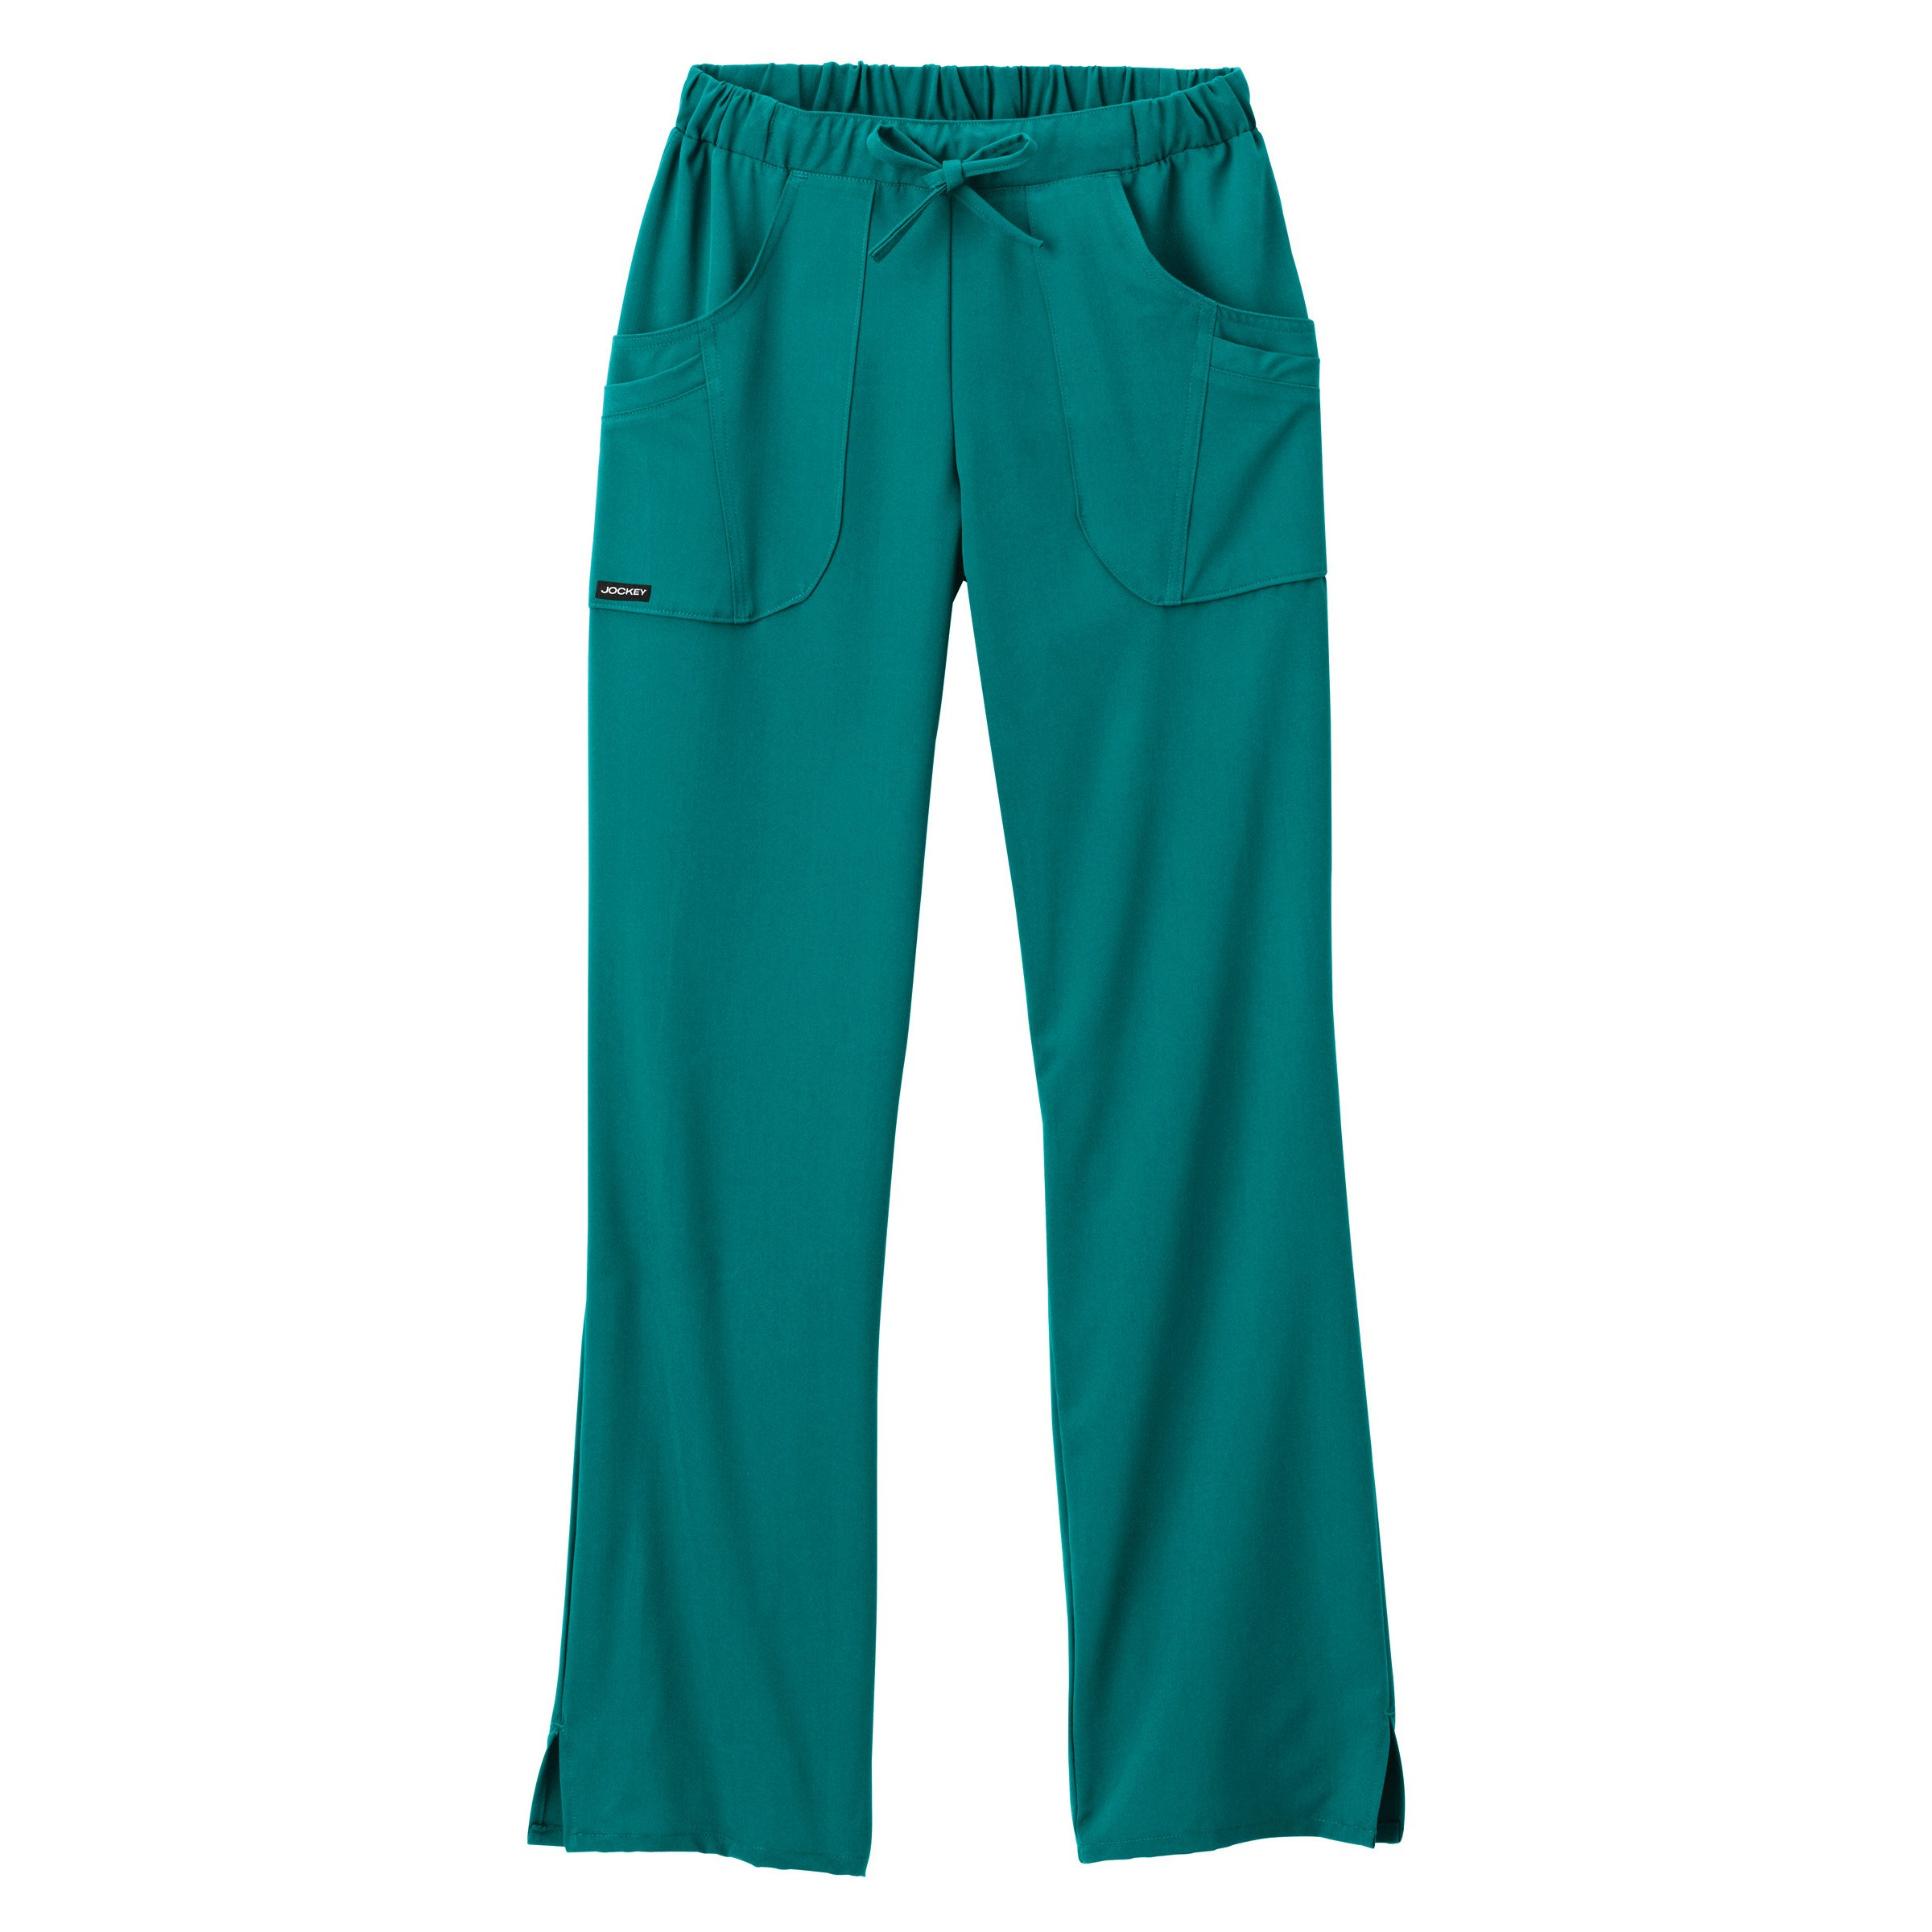 Classic Fit Collection by Jockey Women's Next Generation Elastic Drawstring Waist Scrub Pant XX-Large Teal